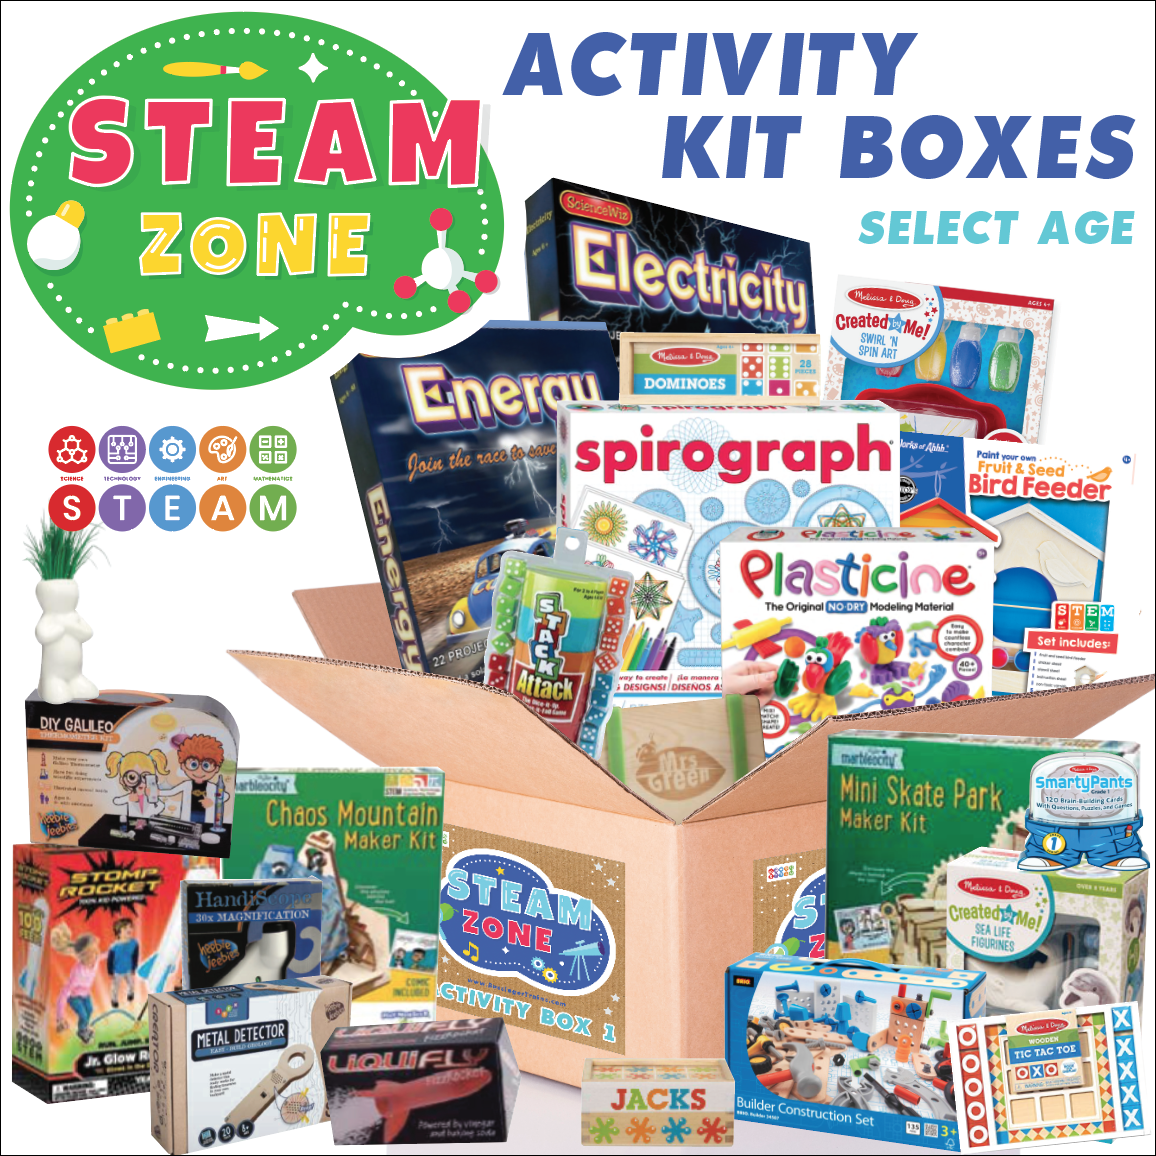 Bussinger Trains S.T.E.A.M Activity Kit Box - THREE